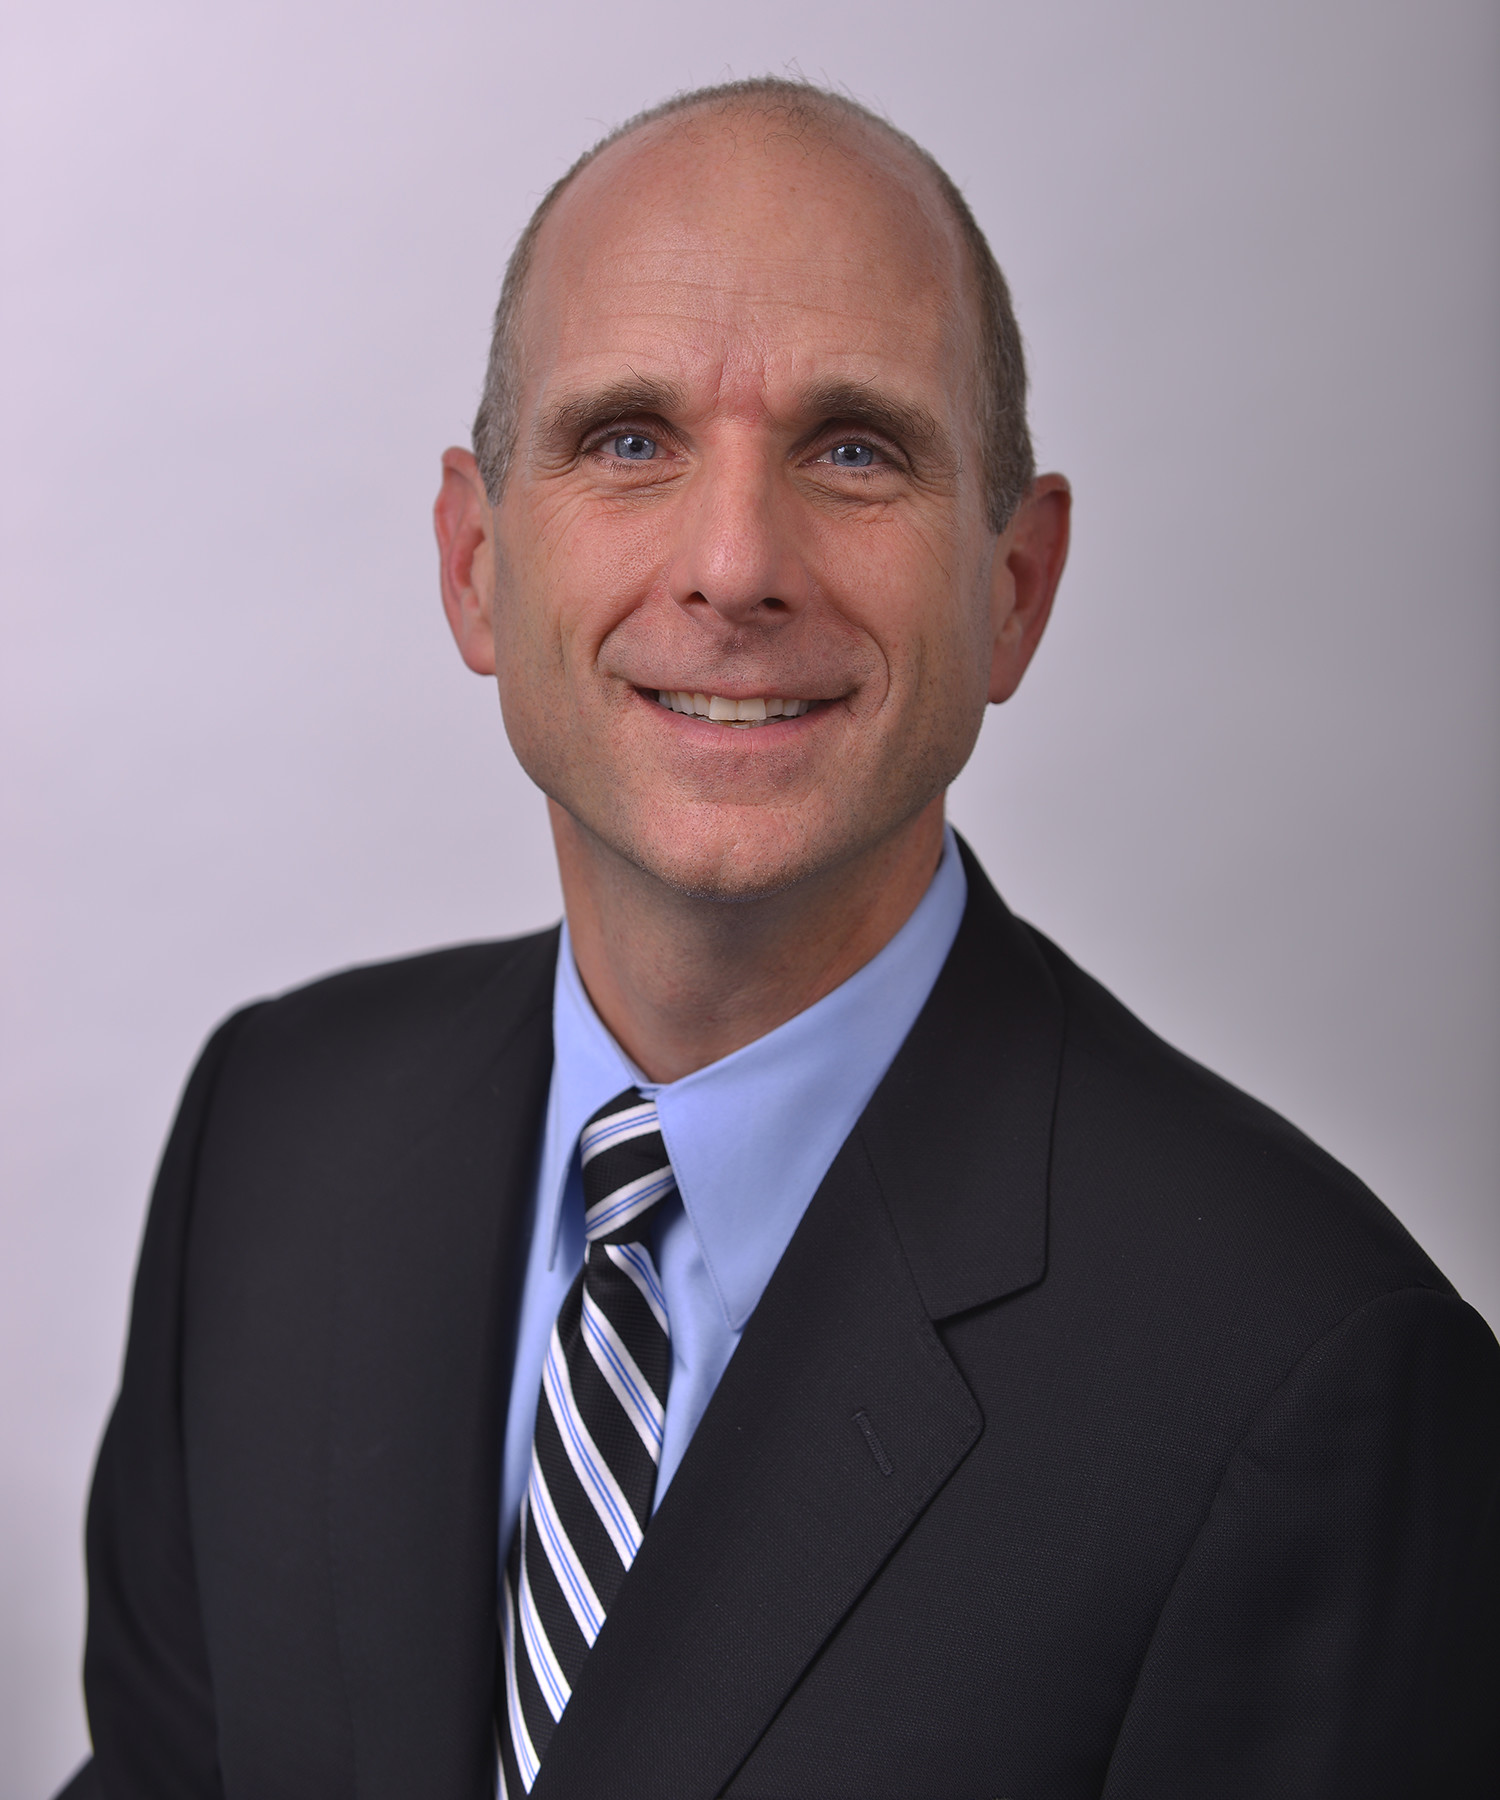 Timothy D. Eippert, Board Chair, National Advisory Board, College of Business Administration at Kent State University